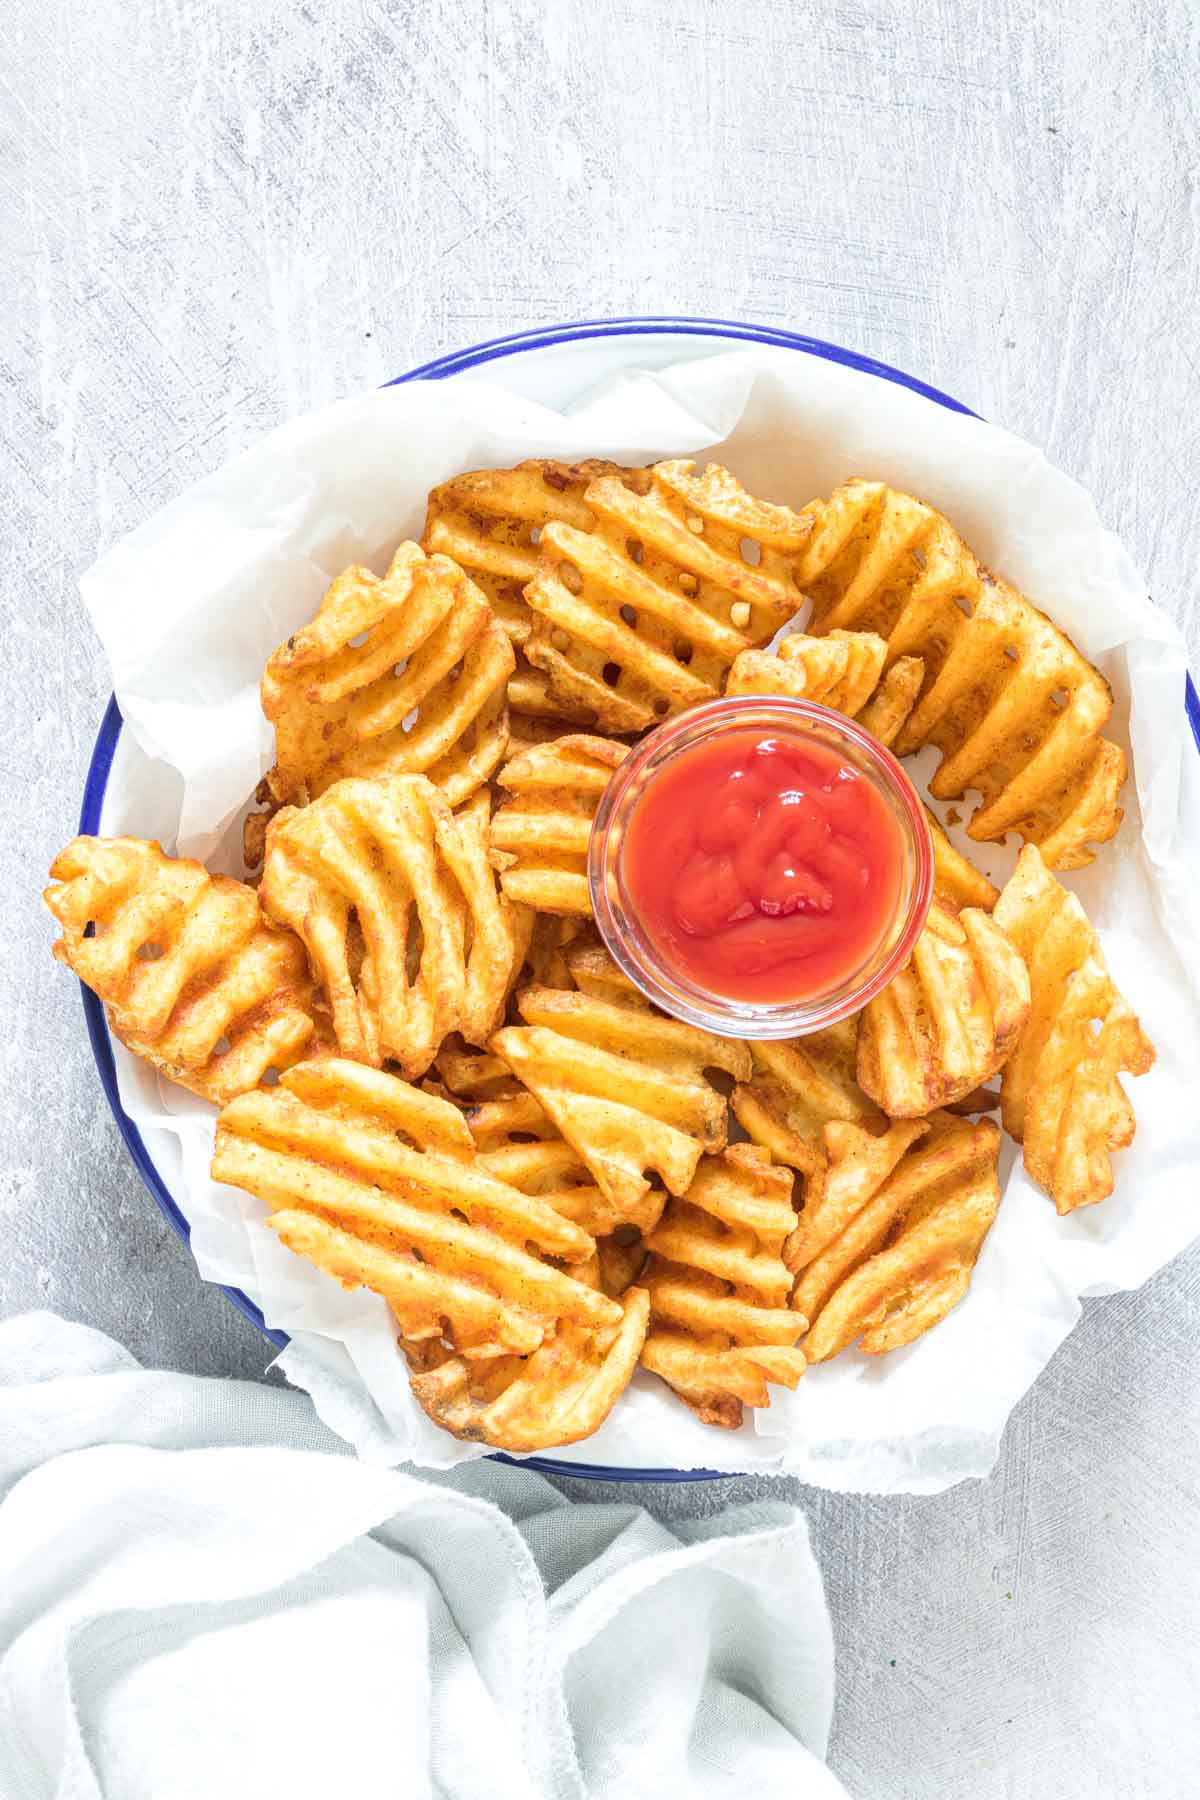 the cooked air fryer frozen waffles fries served in a bowl with a side of ketchup